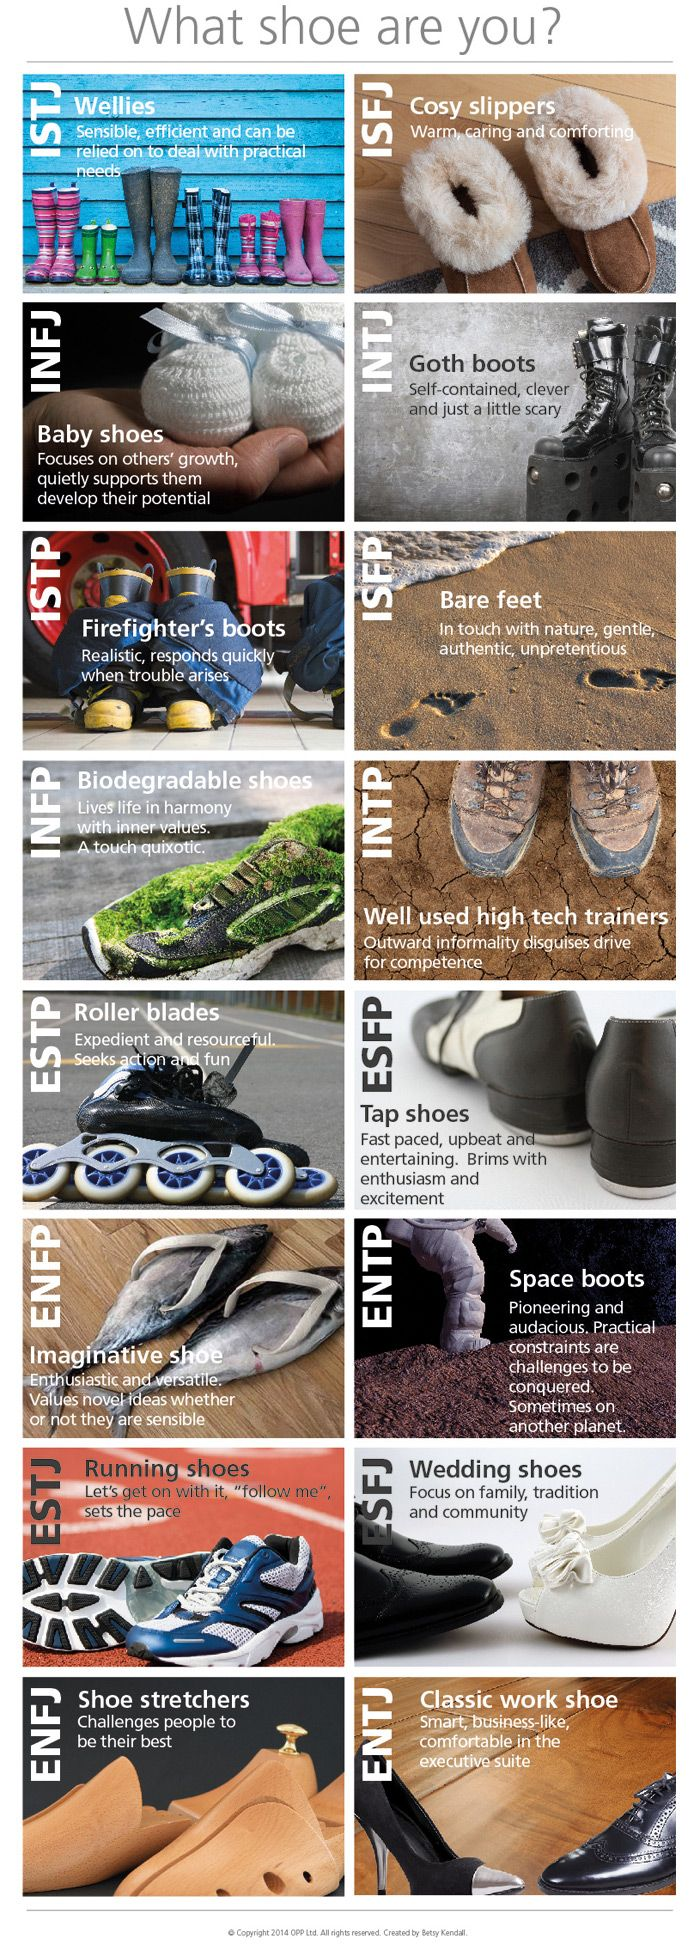 Myers-Briggs Visual: What type of shoe are you?  Just my type of visual!  #mbti